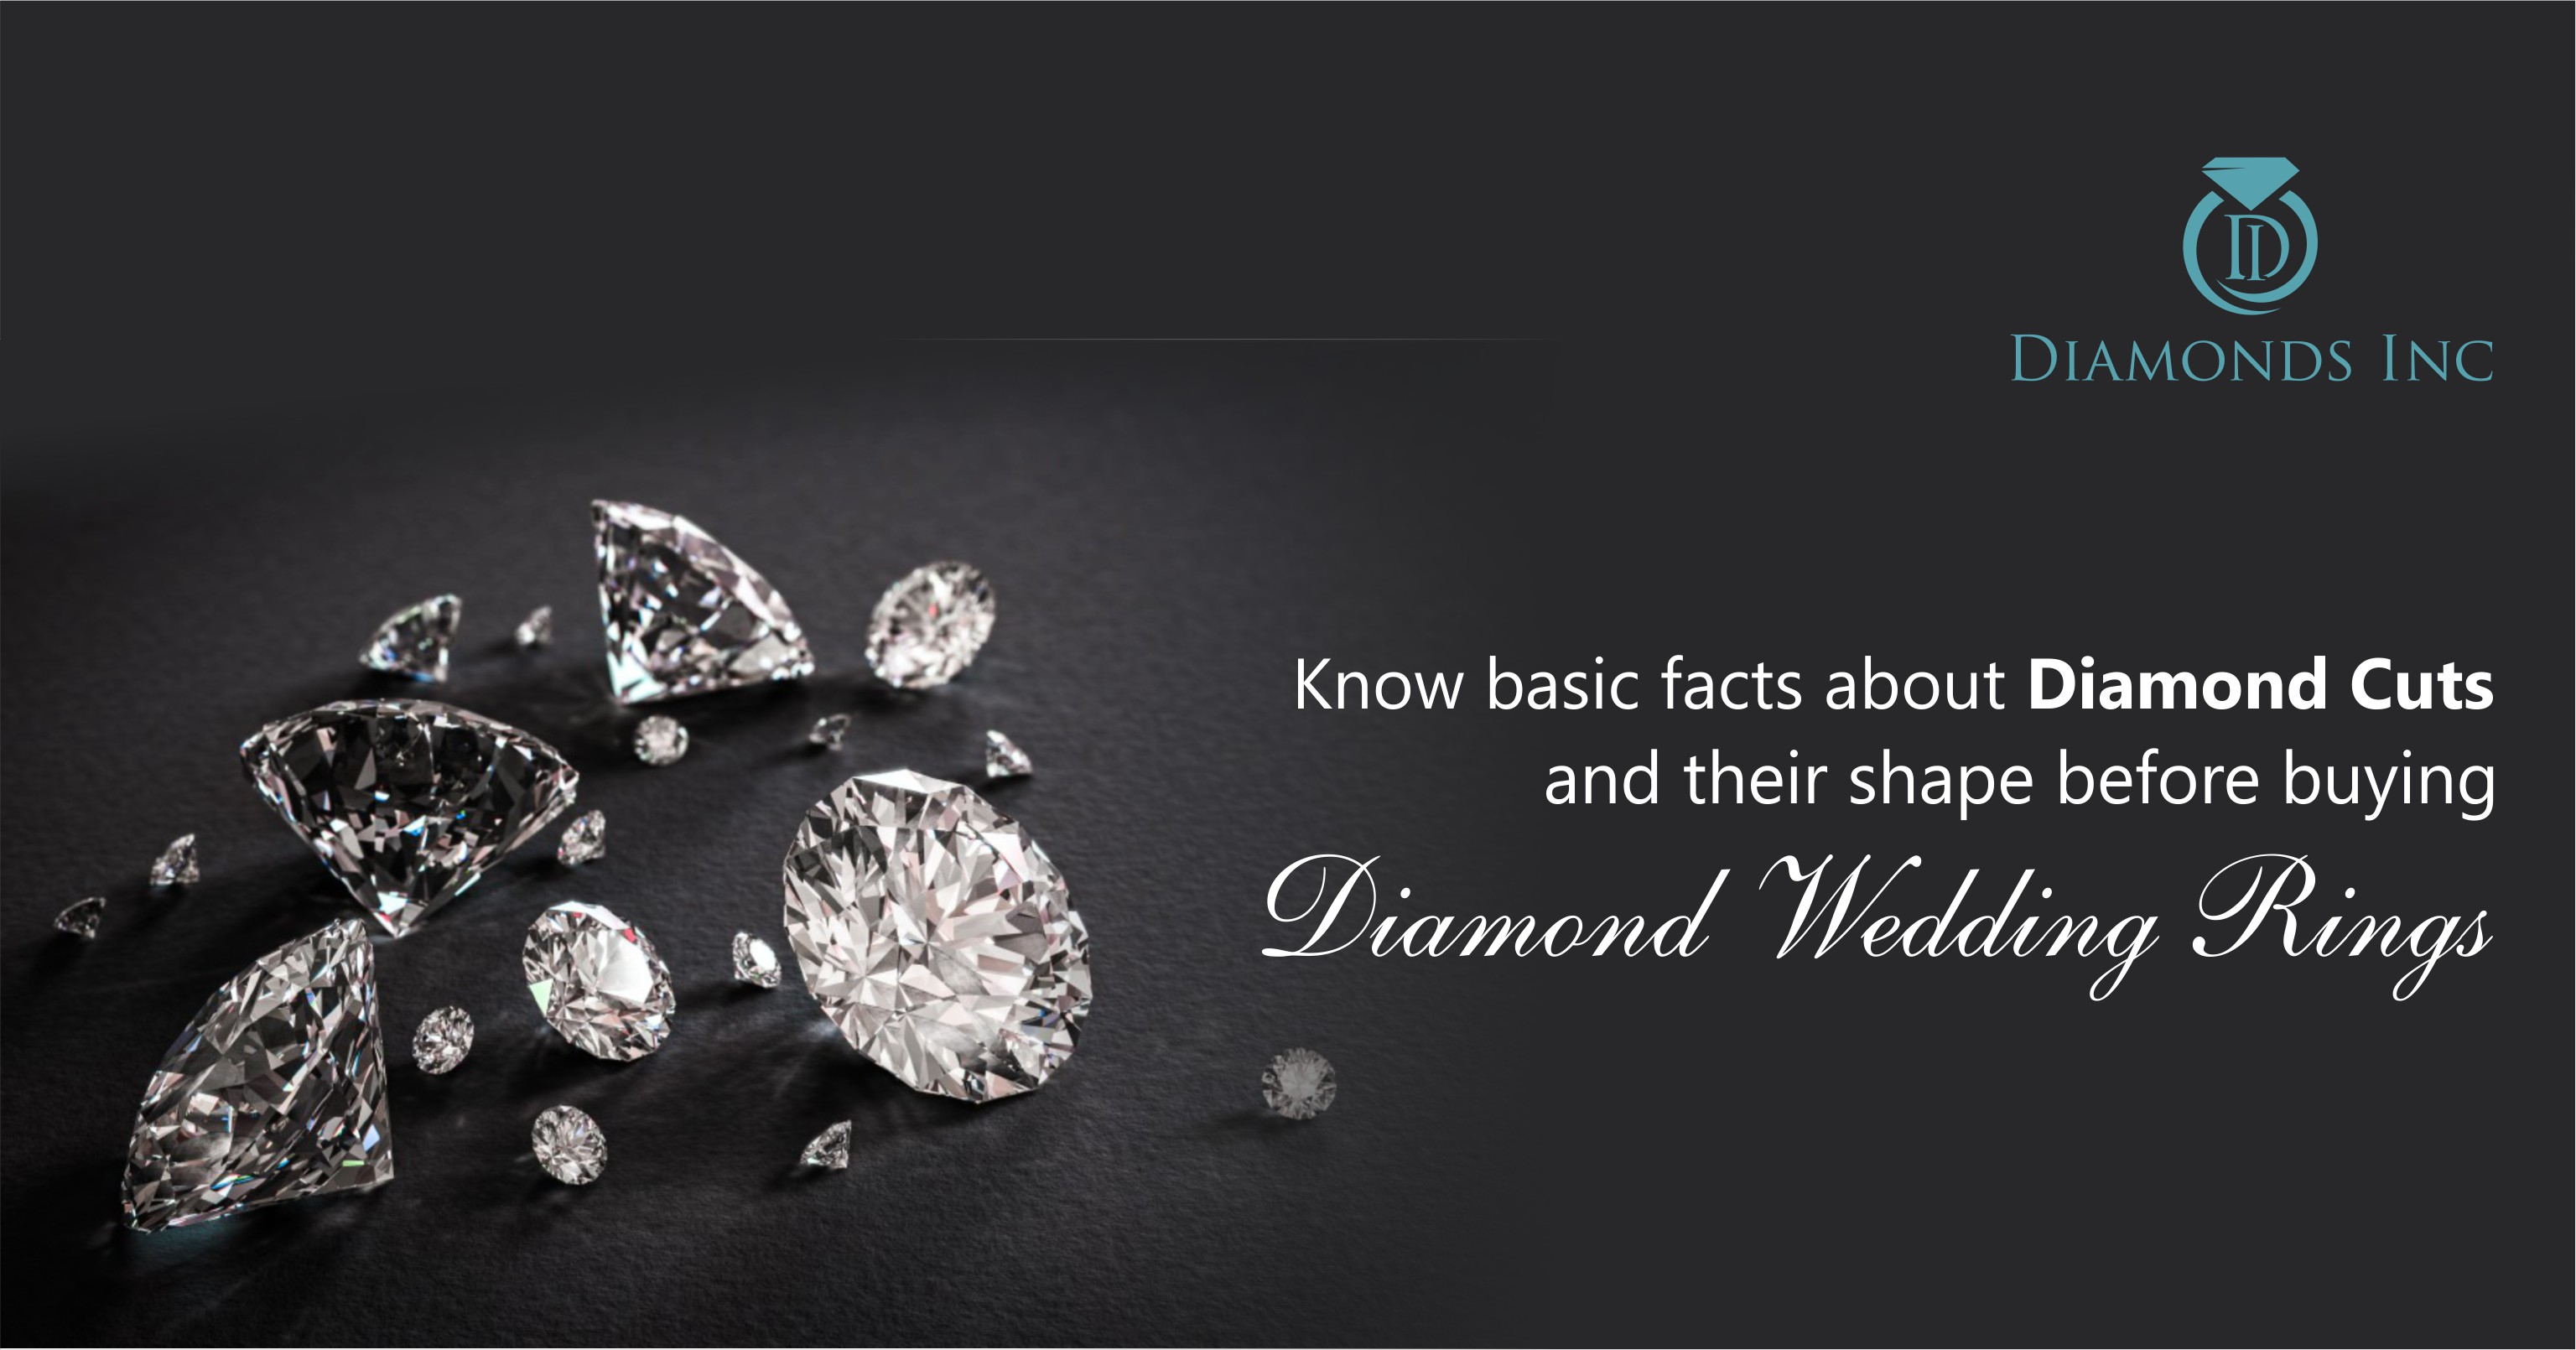 Know basic facts about Diamond Cuts and their shape before buying diamond wedding ring